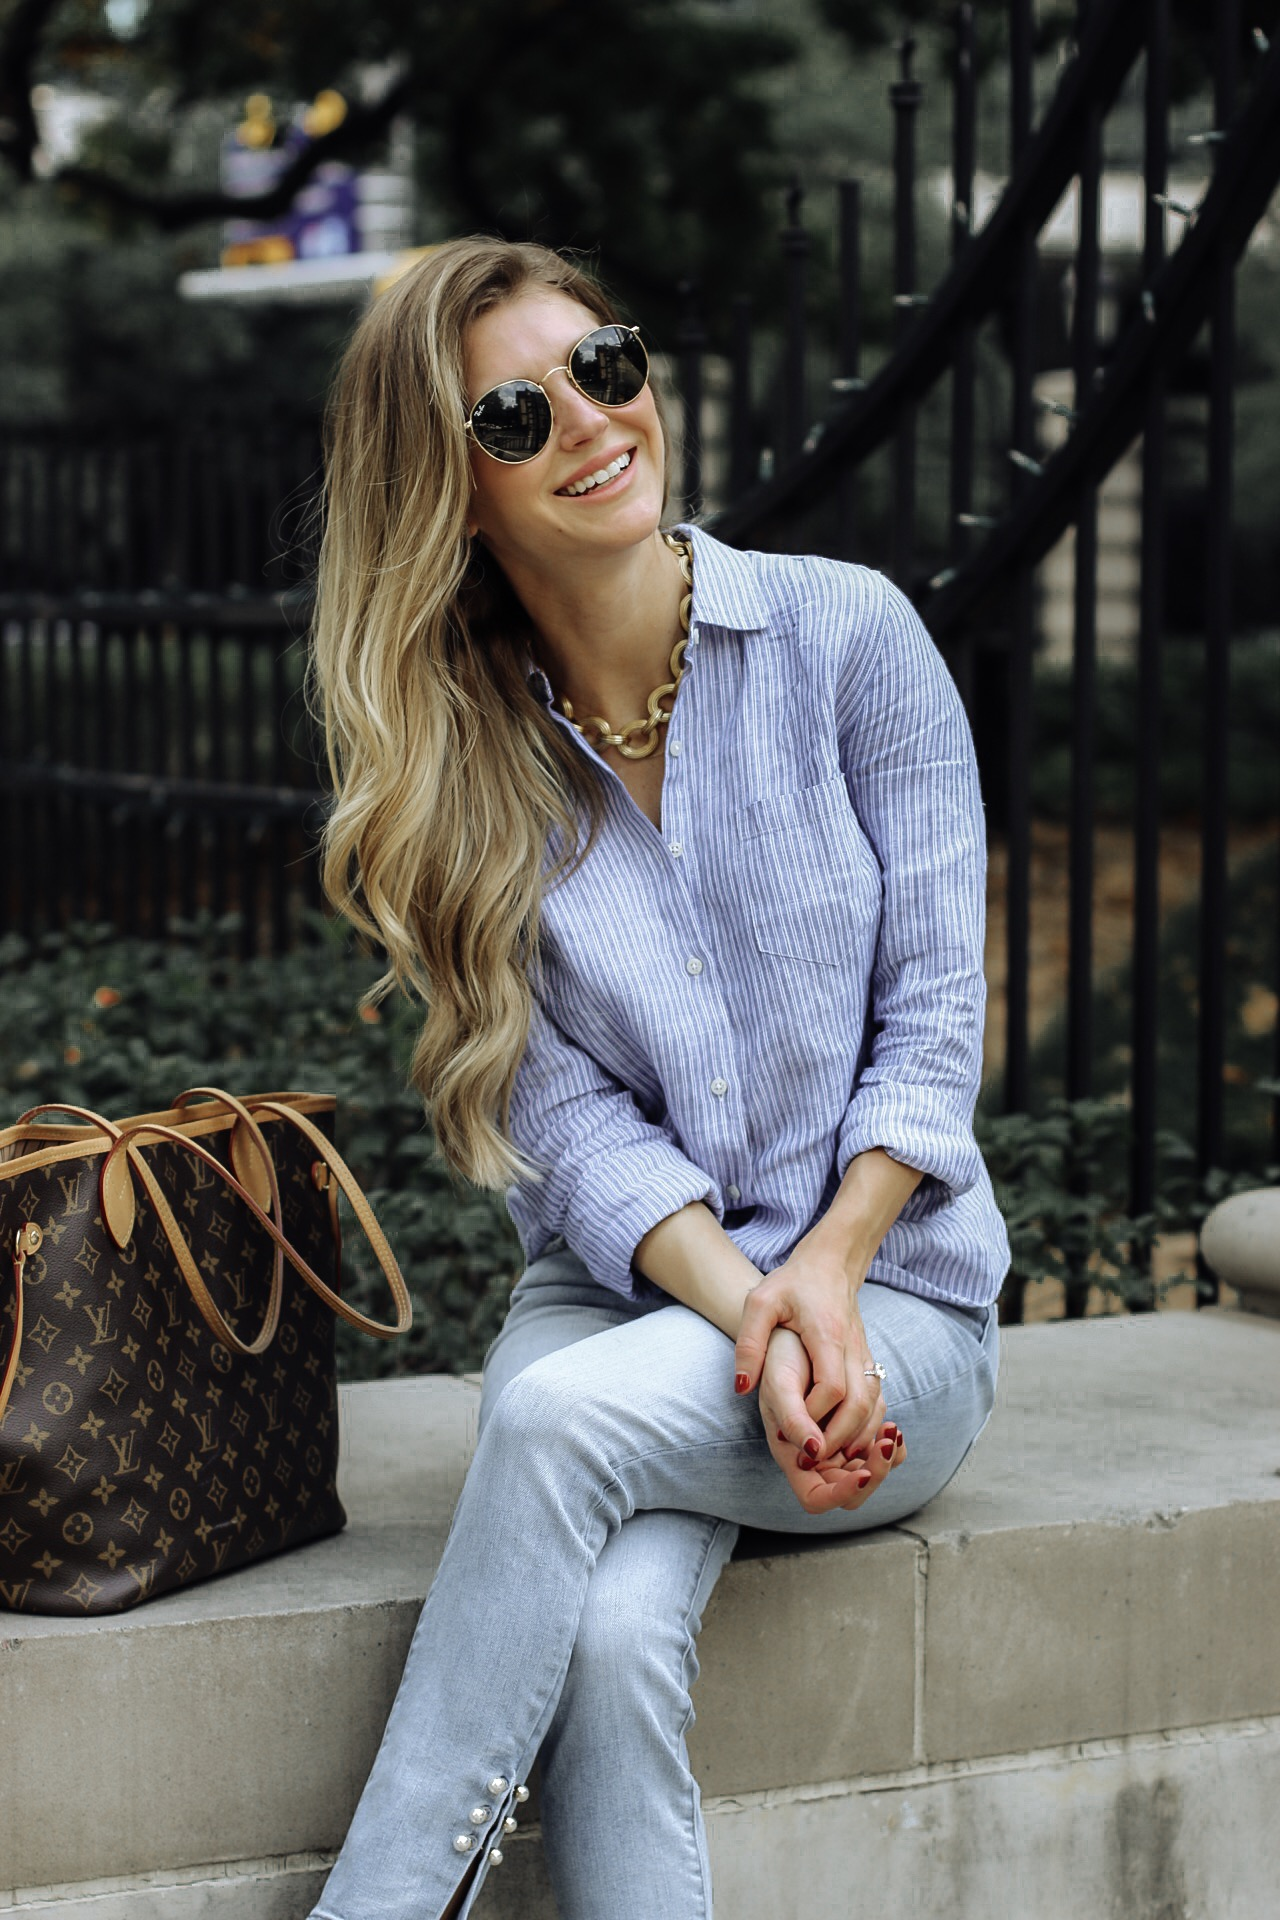 Happy day, running errands wearing button down and jeans